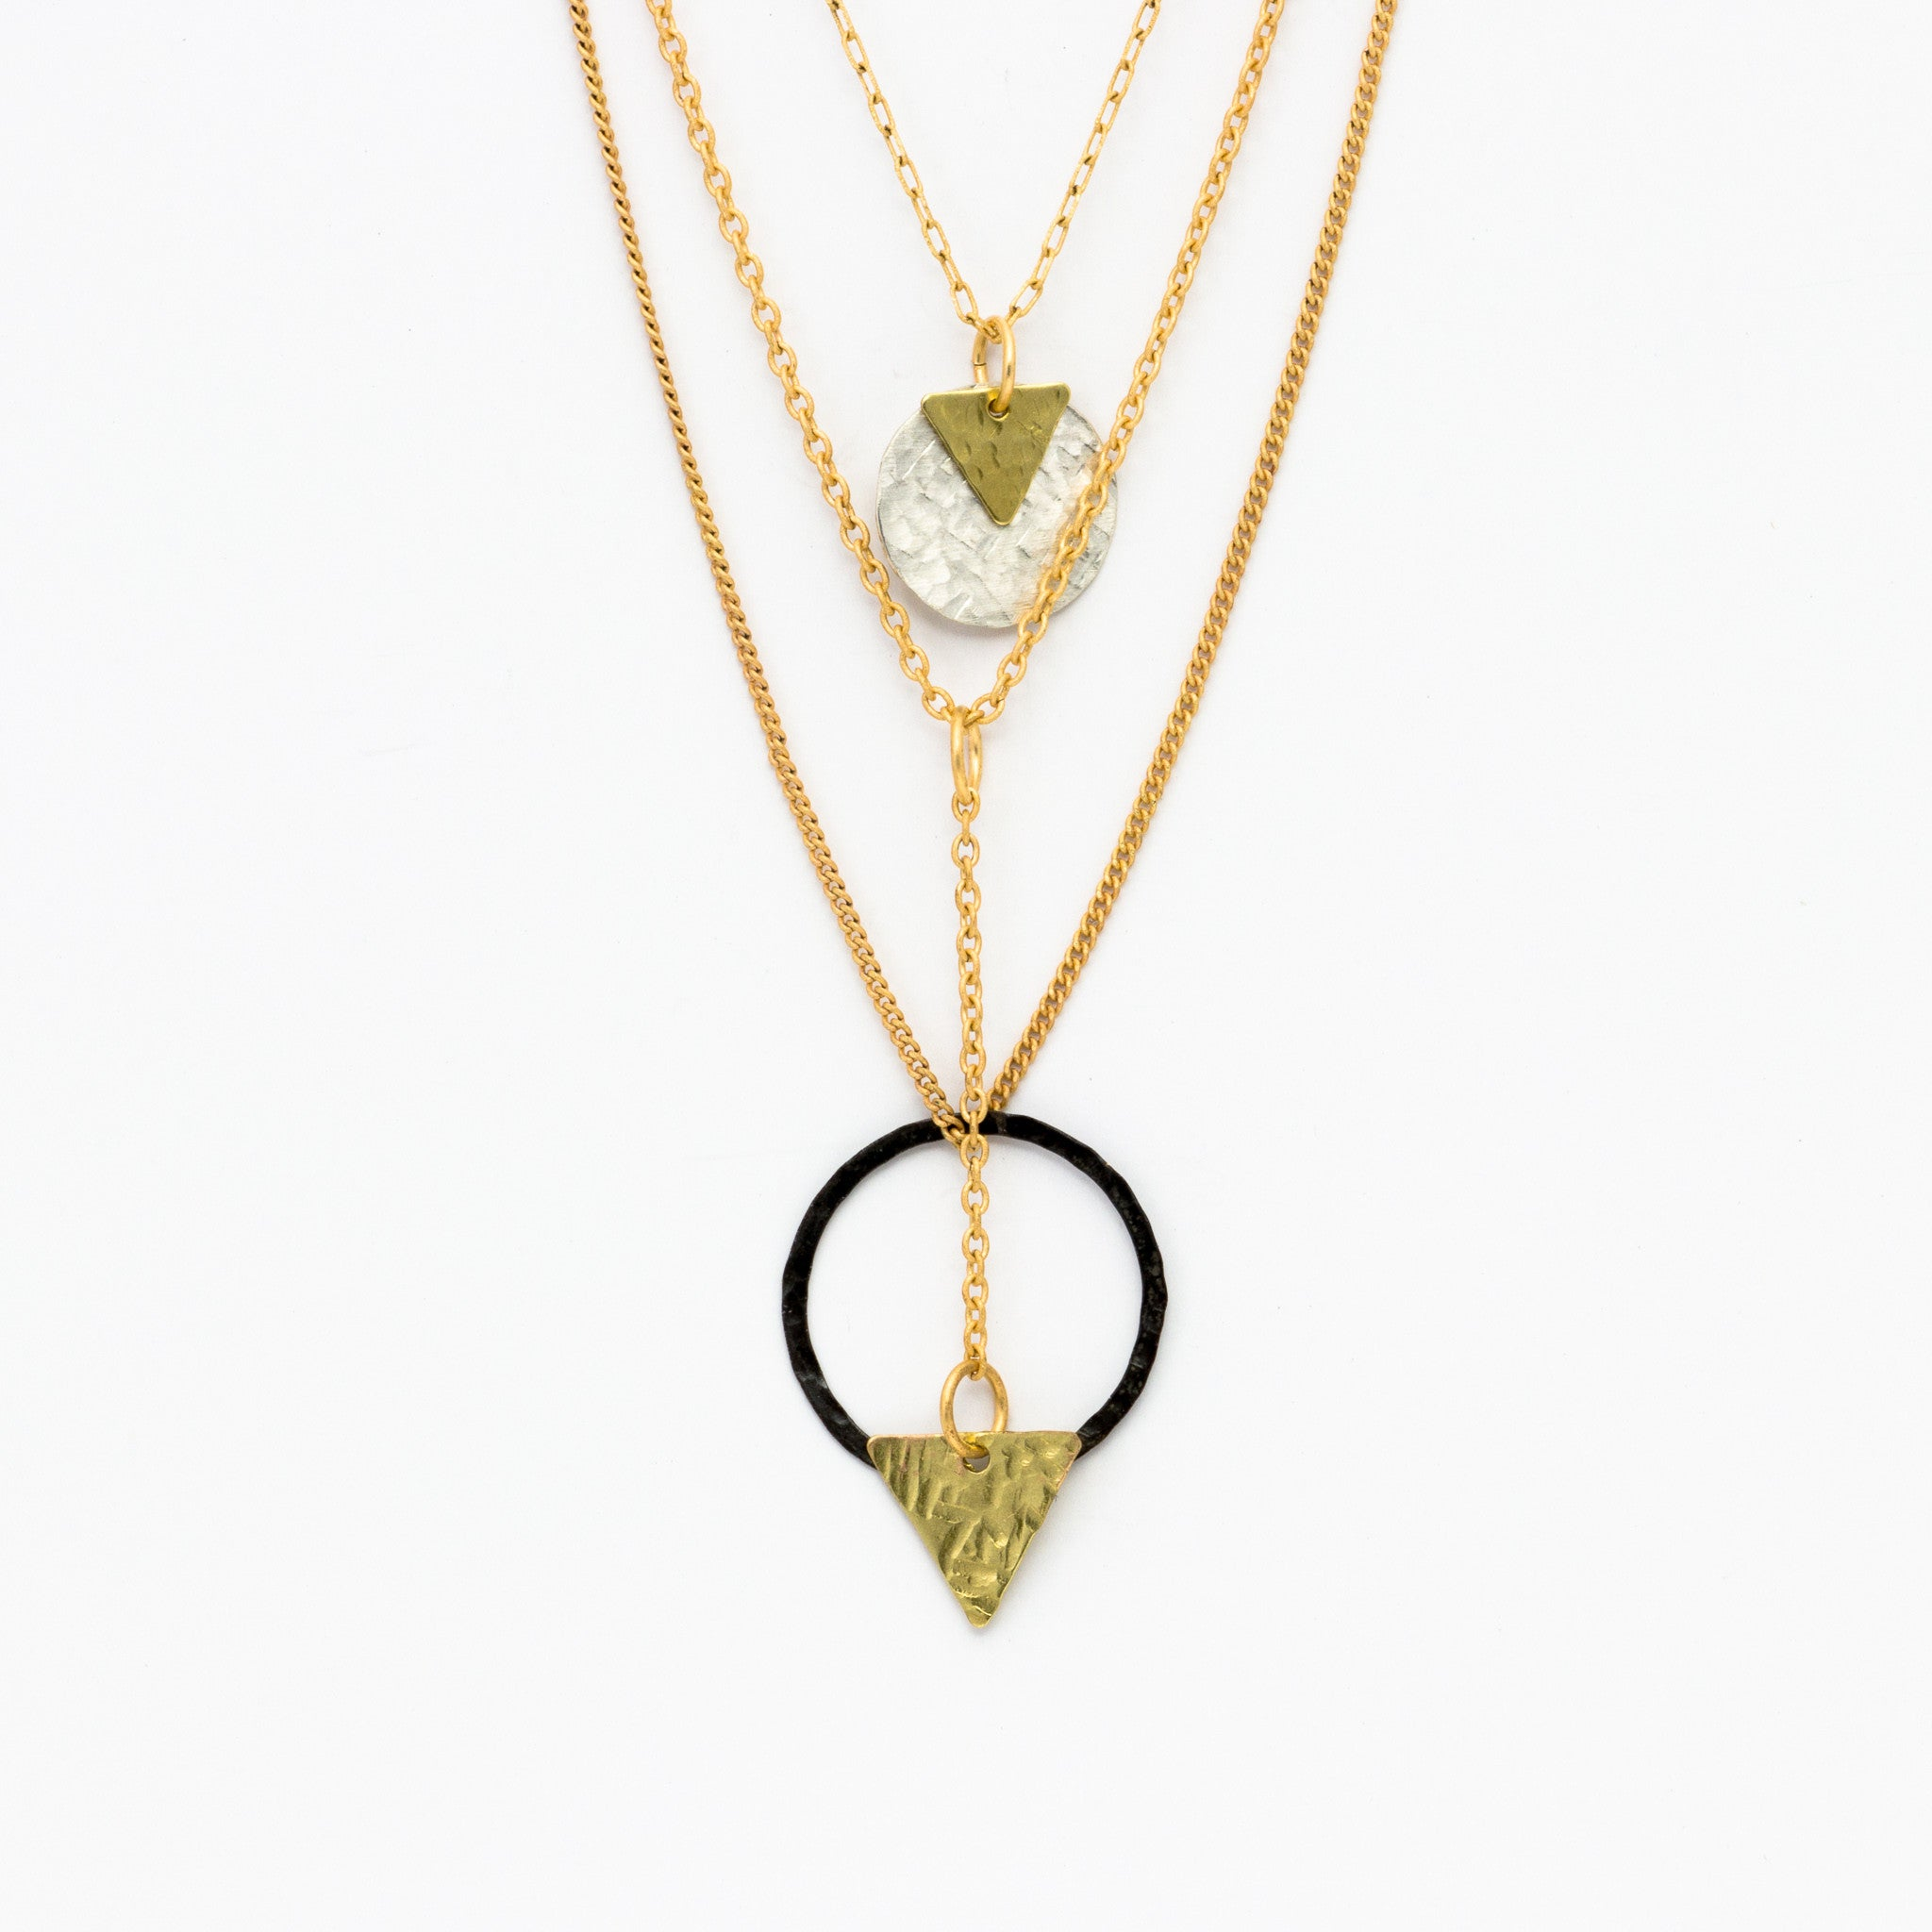 Cecilia gonzales shapes gold necklace norbu cecilia gonzales shapes gold necklace aloadofball Gallery